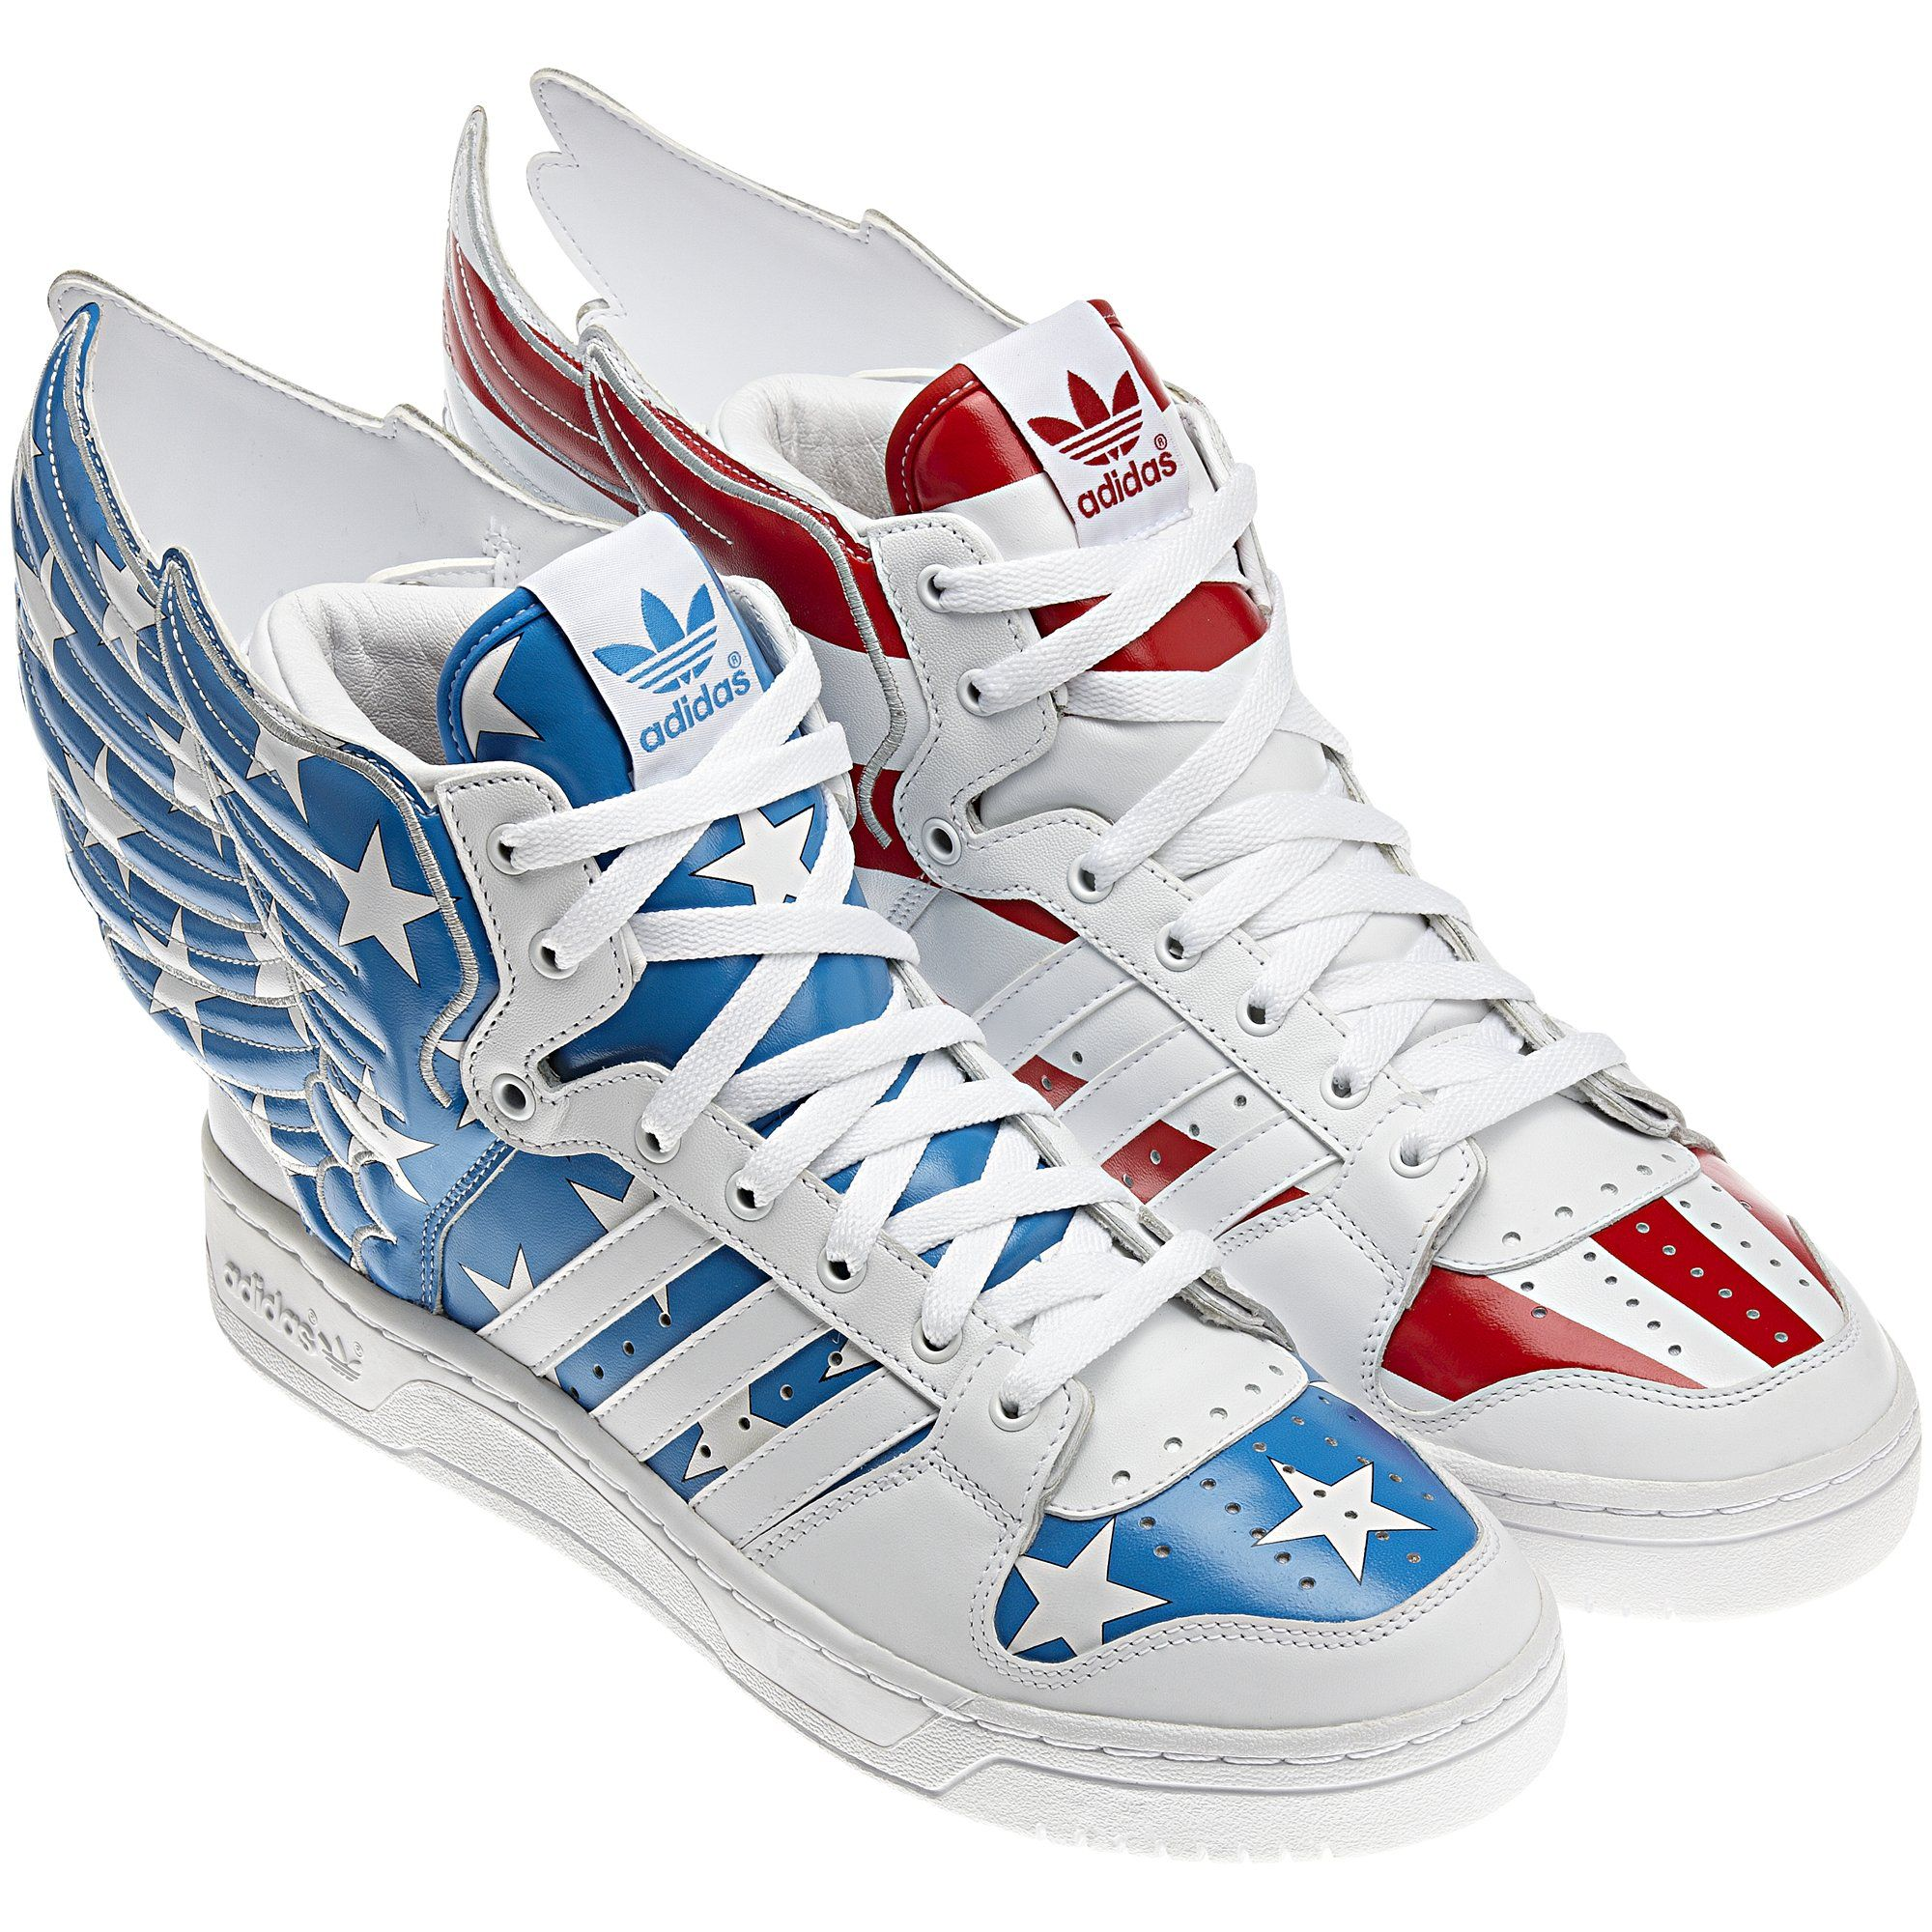 adidas jeremy scott wings flag